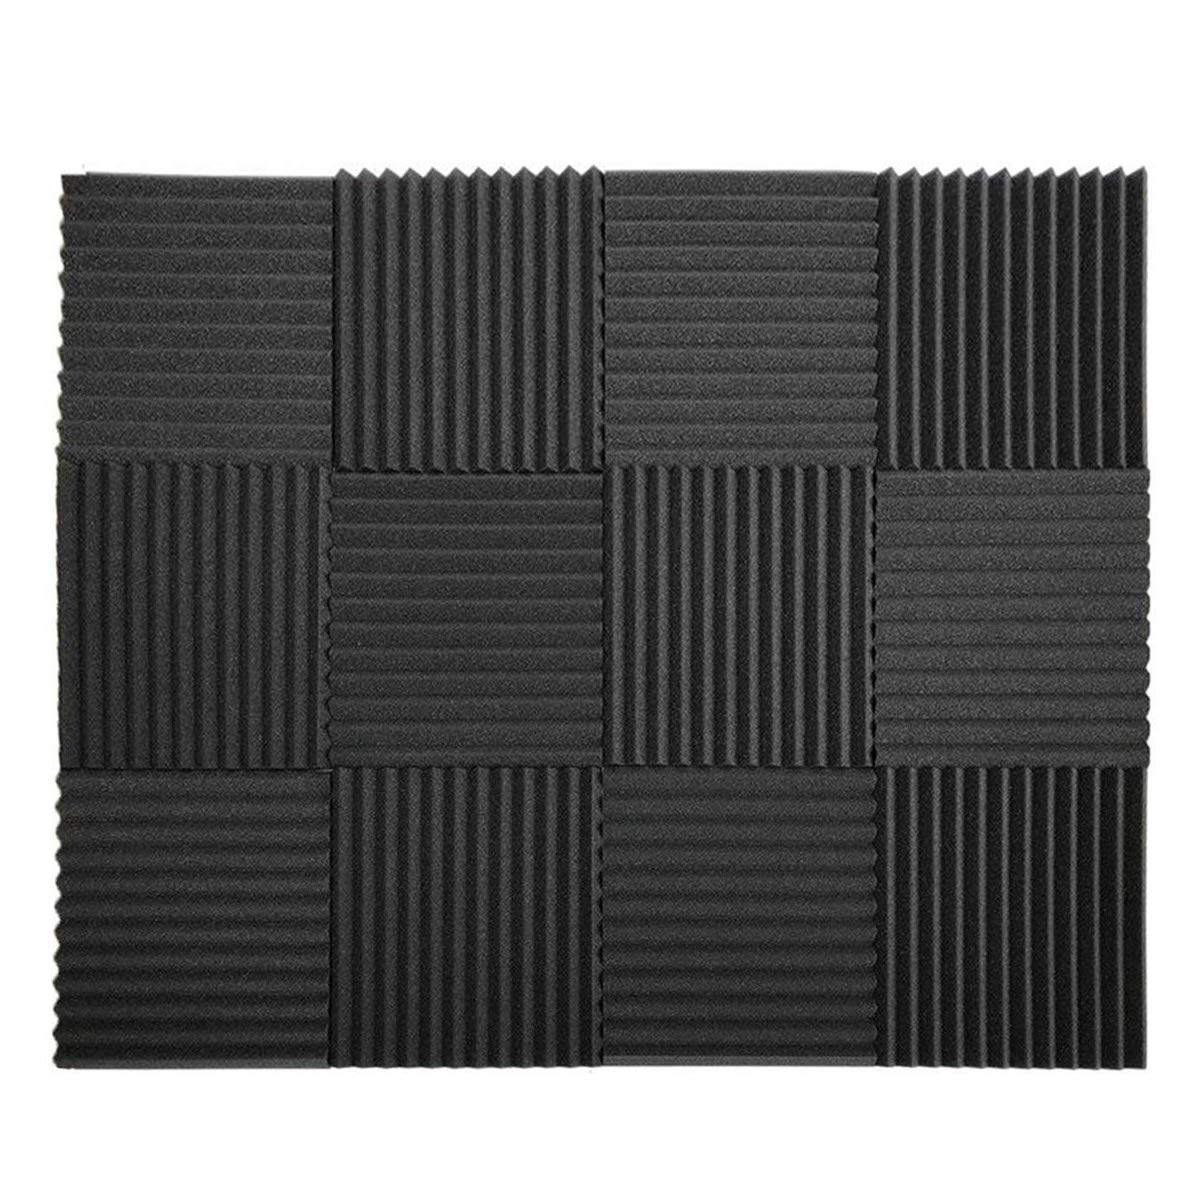 12 Pack Set Acoustic Panels, 2'' X 12'' X 12'' Acoustic Foam Panels, Studio Wedge Tiles, Sound Panels wedges Soundproof Sound Insulation Absorbing